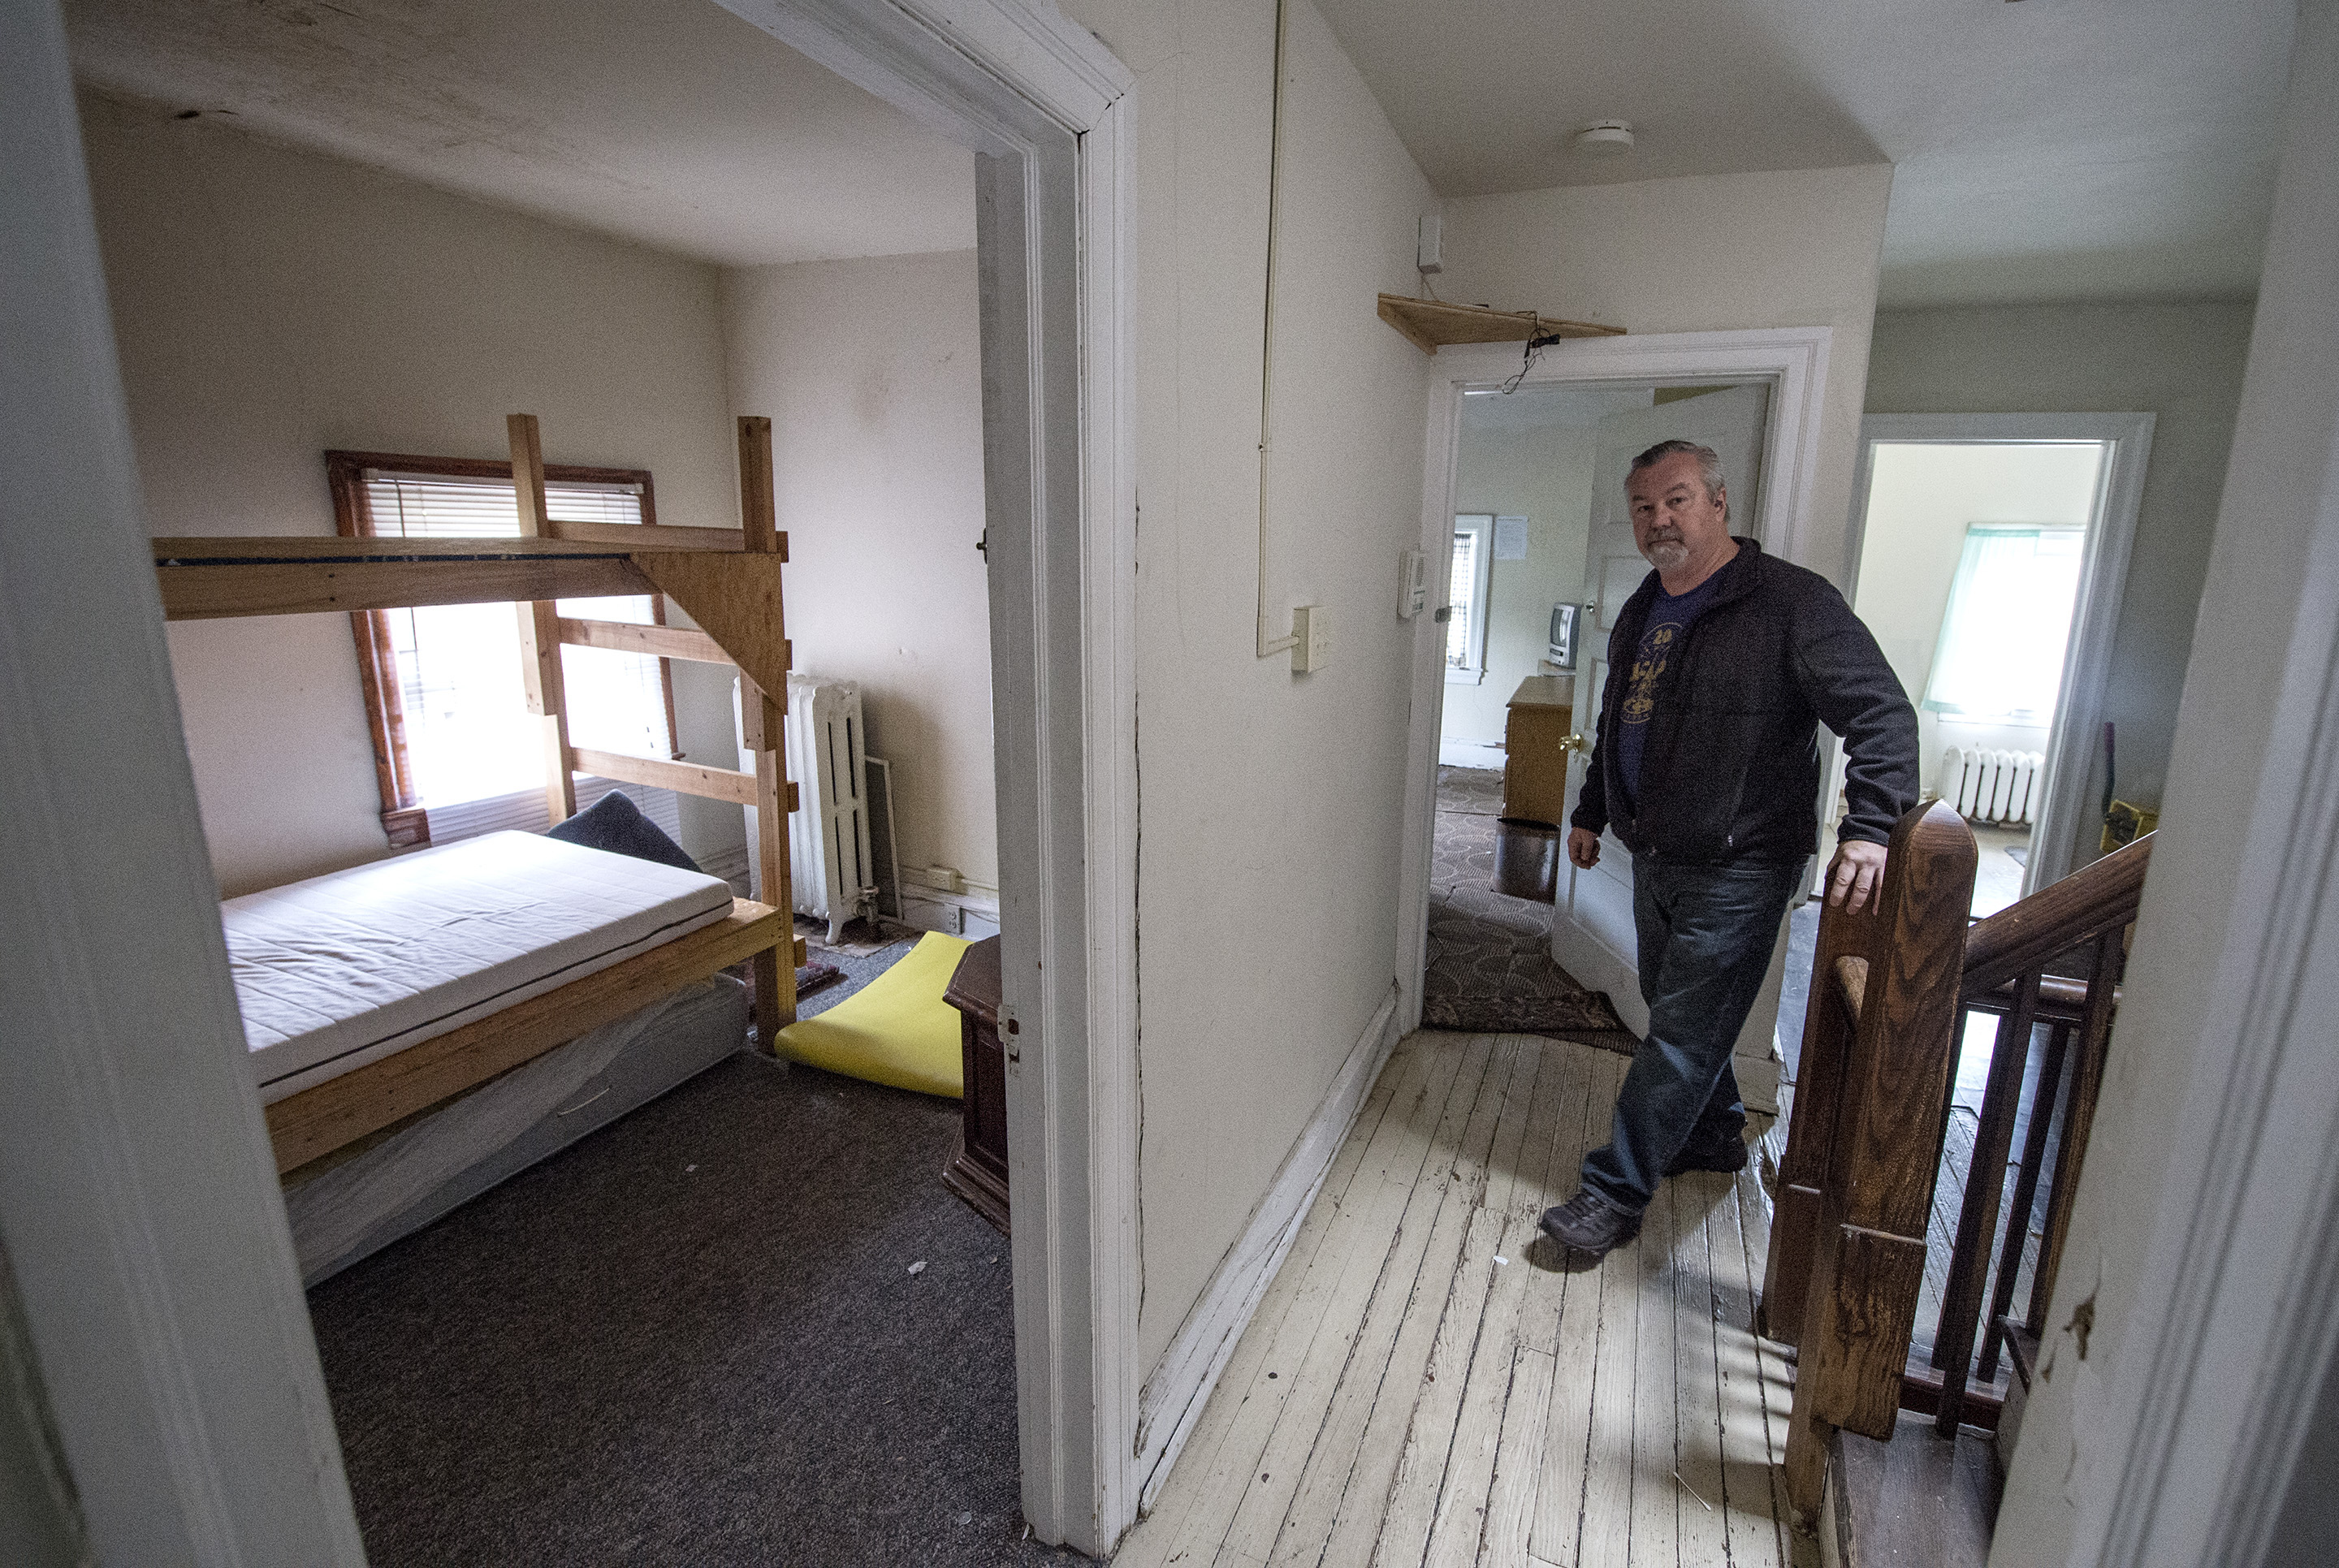 Jack O'Byrne walks to the 2nd floor of the church rectory, which will house the artists.